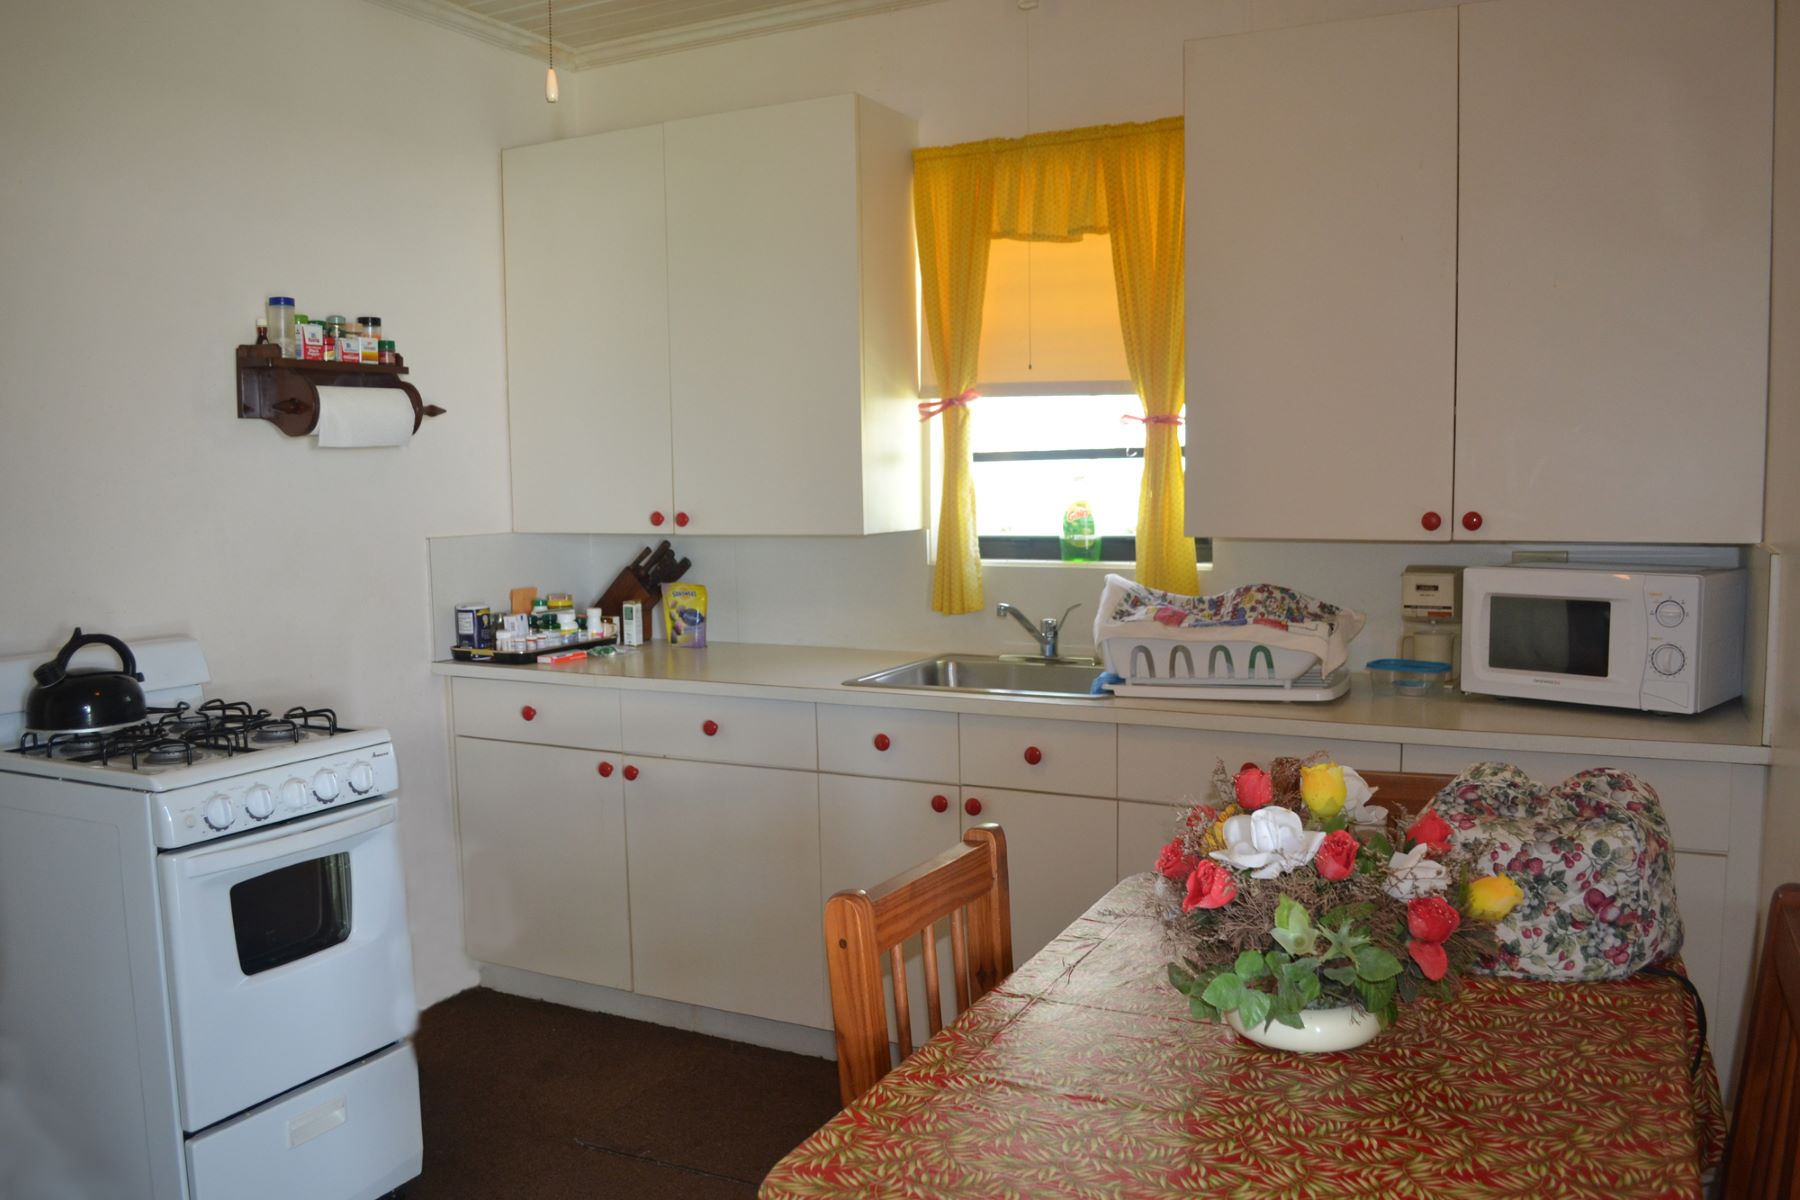 Additional photo for property listing at Emelie's Cottage 西班牙维尔斯, 伊路瑟拉 巴哈马